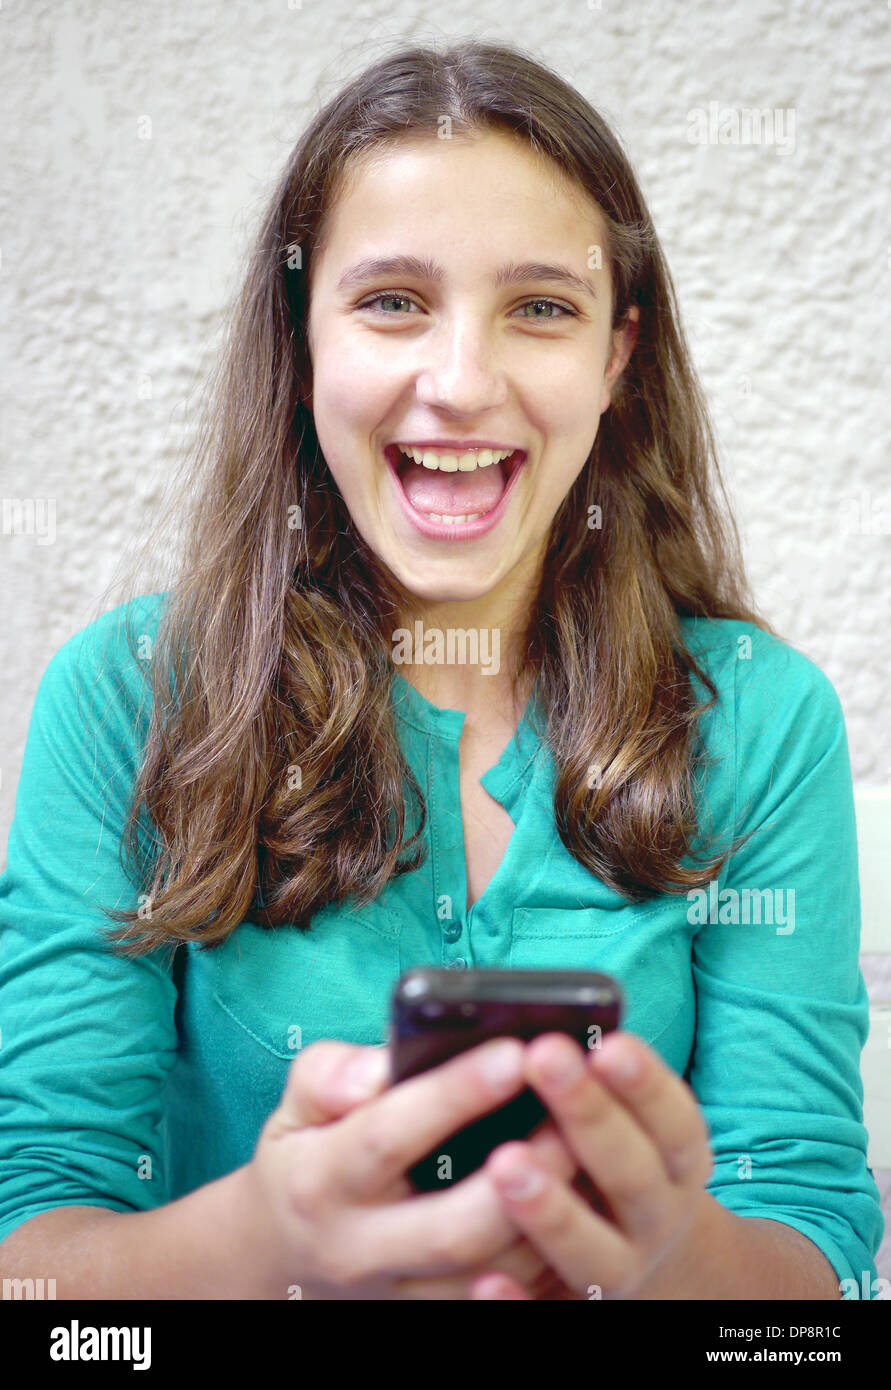 girls laughs at cellphone message - Stock Image